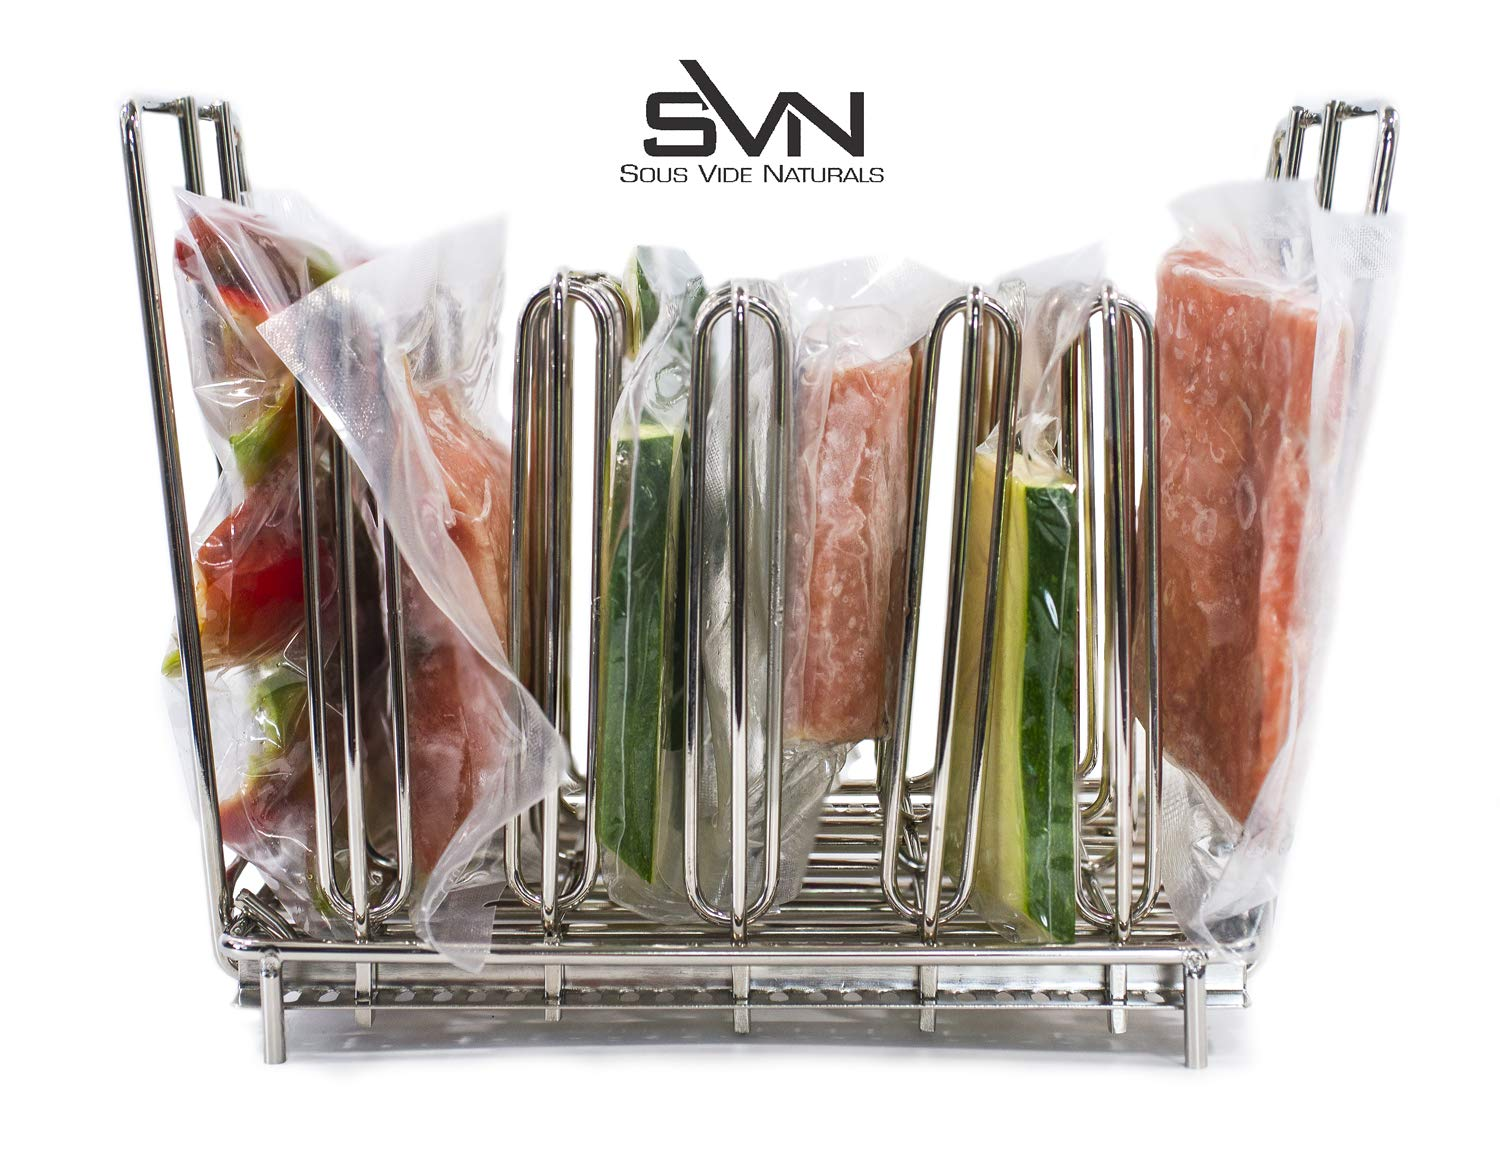 Sous Vide Rack For Anova, Nomiku, Sansaire, PolyScience All Sous Vide Cooker Immersion Circulator Cookers - Adjustable Stainless Steel, Collapsible, Even Warming - Sous Vide Rack Divider Is Heavy Duty & Rust Resistant Works With Most Sous Vide Containe